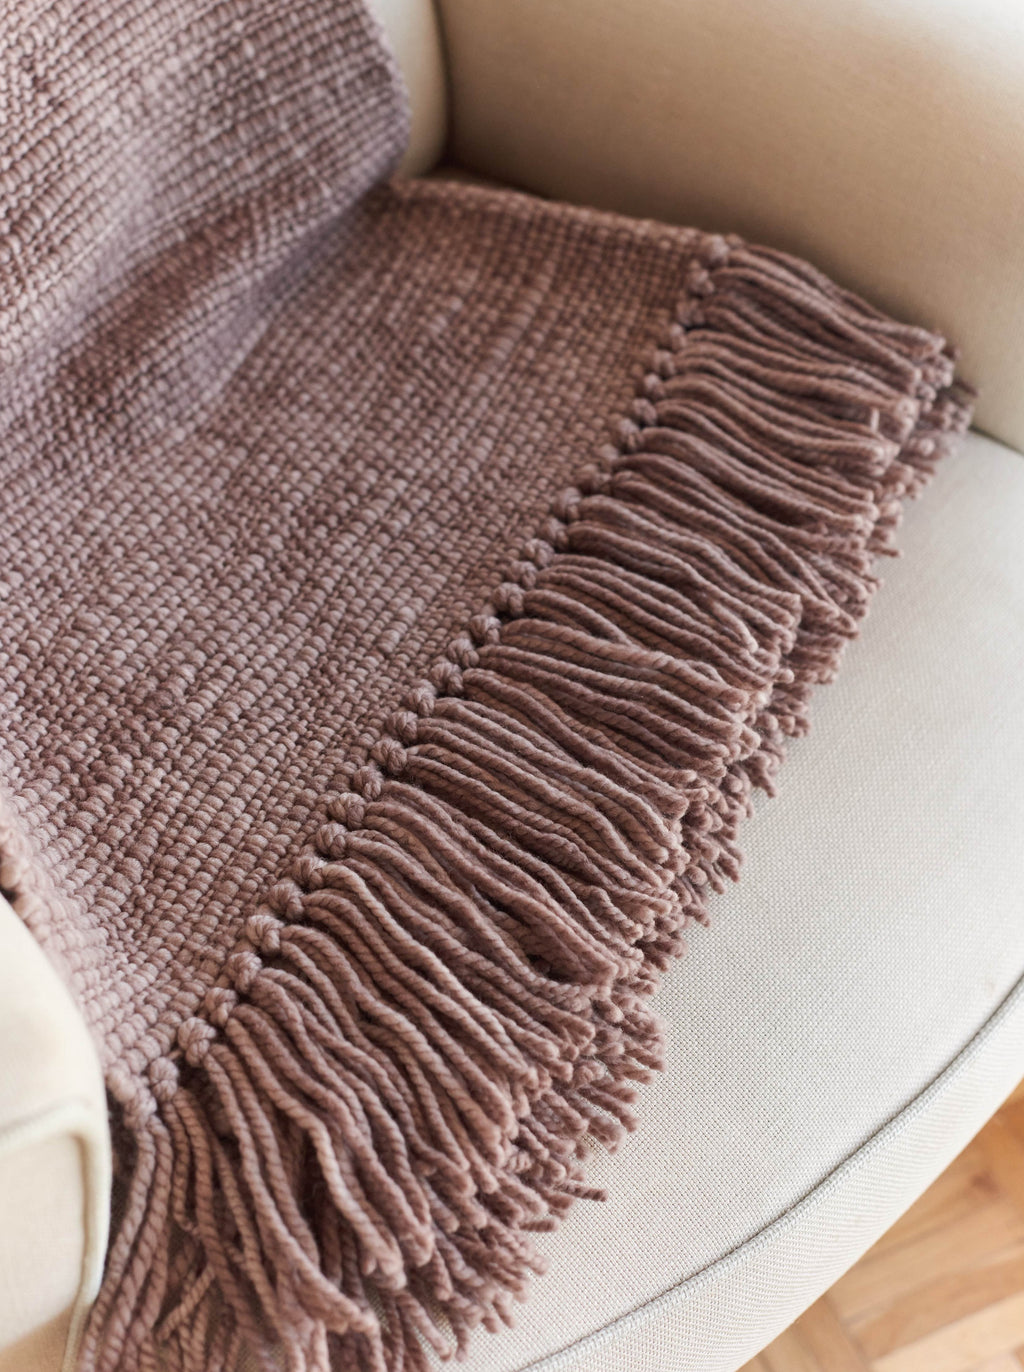 AROMA Throw Blanket in Bison